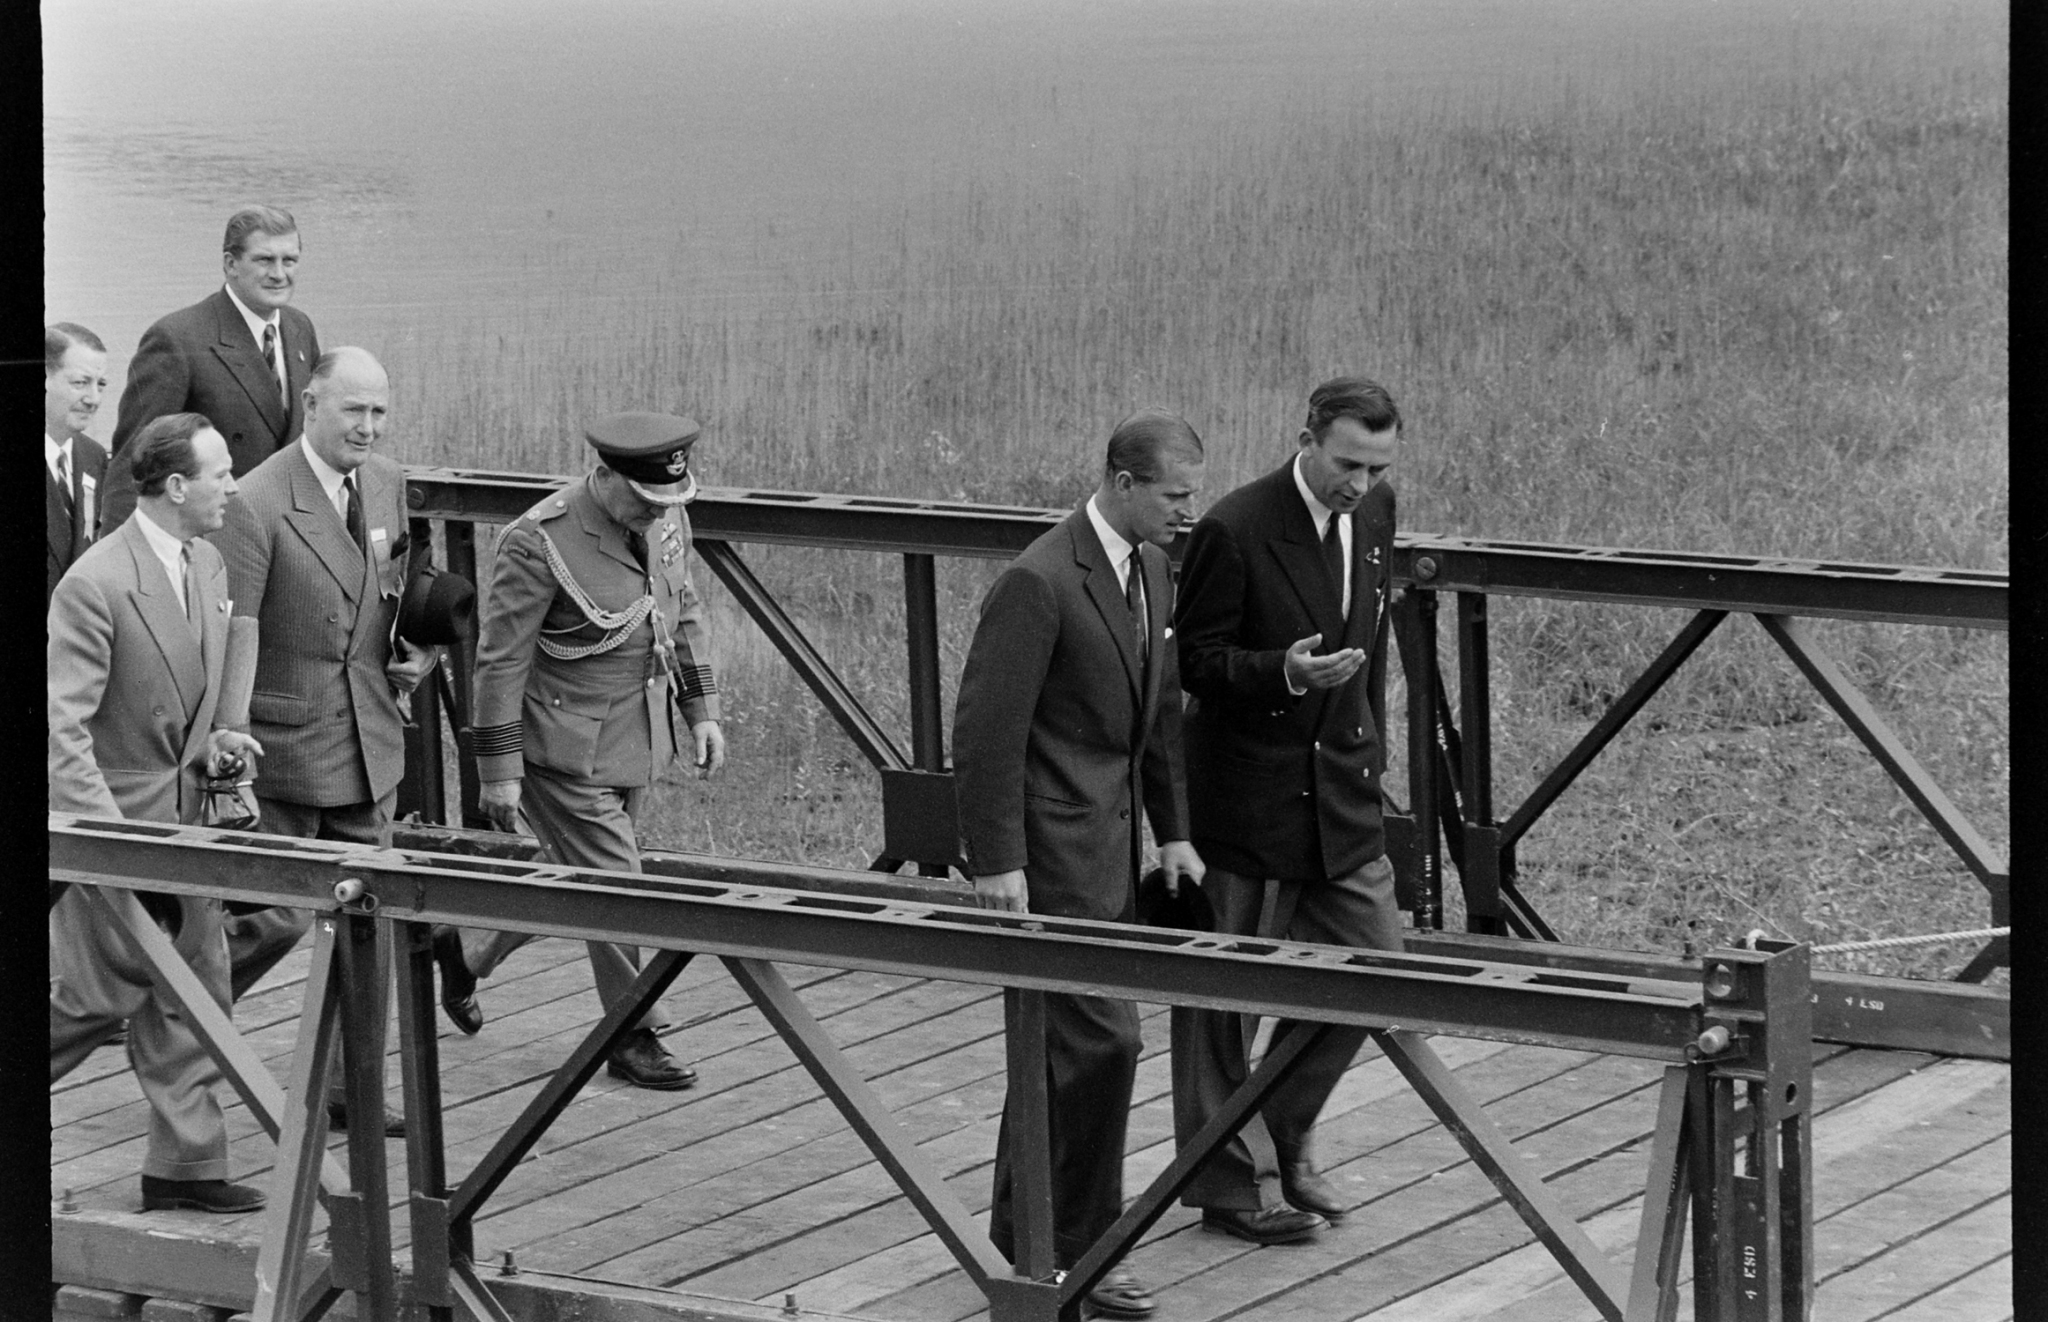 Prince Philip, Duke of Edinburgh walking on a dock during the British Empire and Commonwealth Games, Vancouver, B.C., 1954.